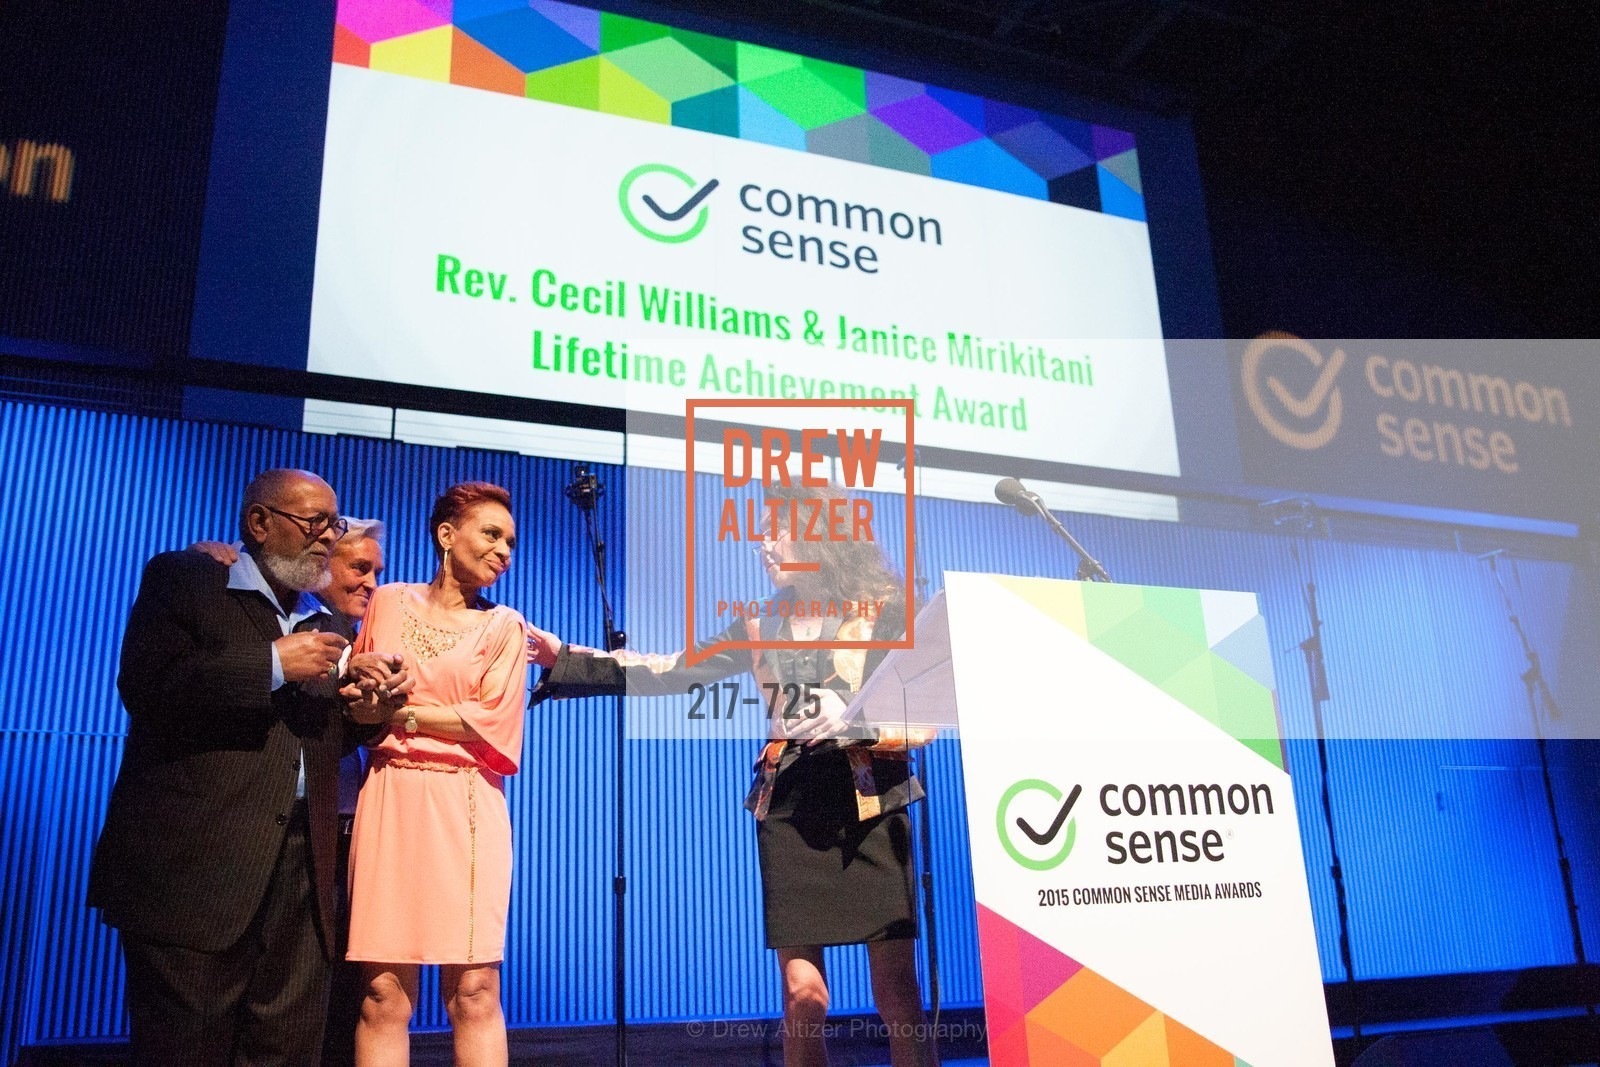 Reverend Cecil Williams, Renel Brooks-Moon, Janice Mirikitani, COMMON SENSE Media Awards 2015, US, May 14th, 2015,Drew Altizer, Drew Altizer Photography, full-service agency, private events, San Francisco photographer, photographer california